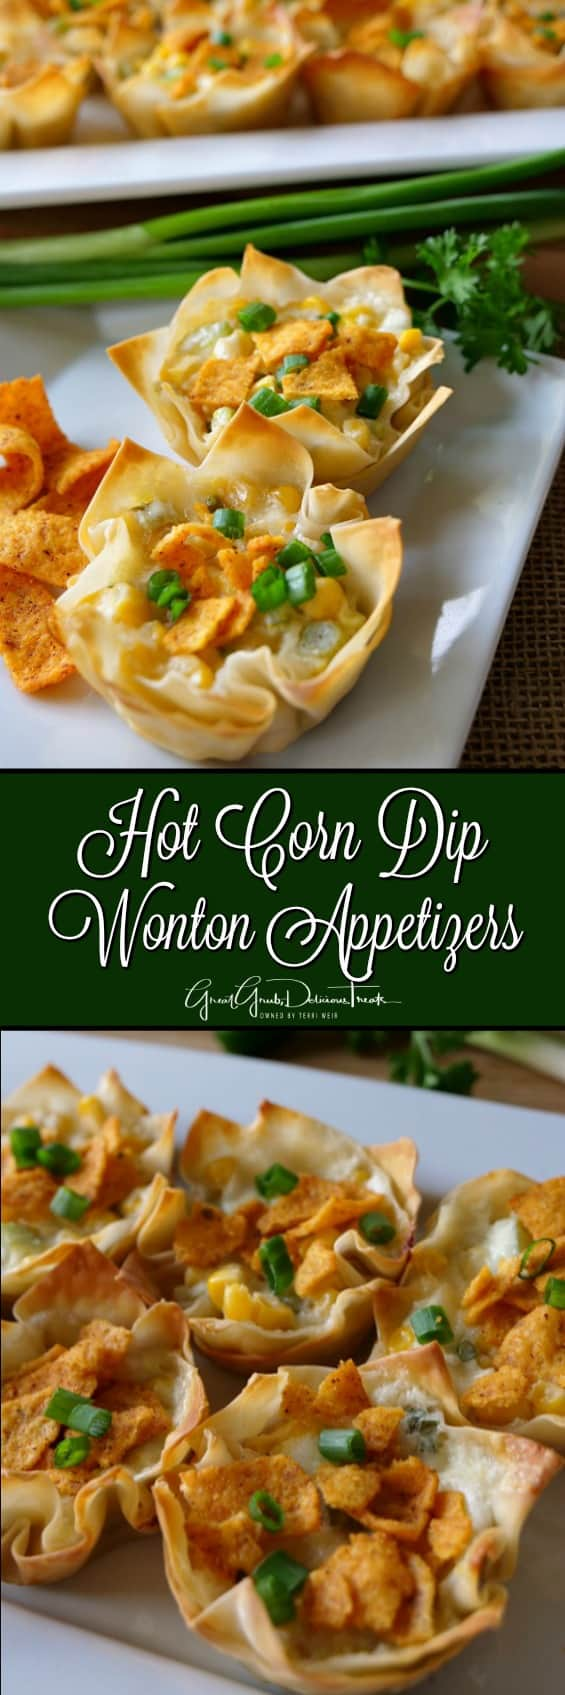 Hot Corn Dip Wonton Appetizers